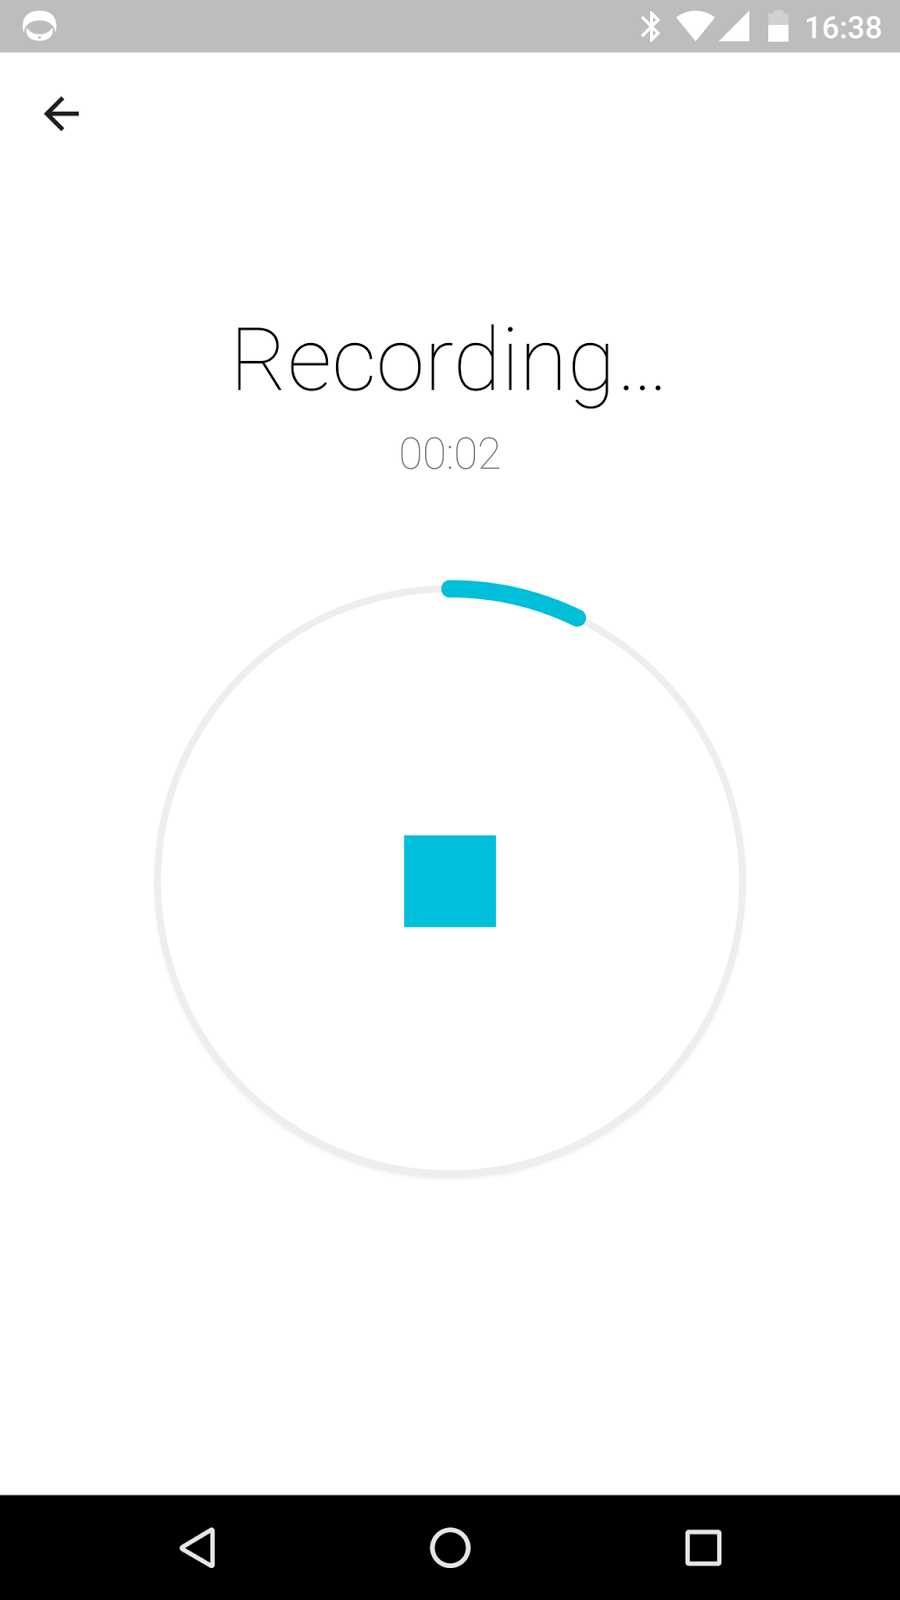 Project Fi App Now Lets You Record And Manage Voicemail Greetings